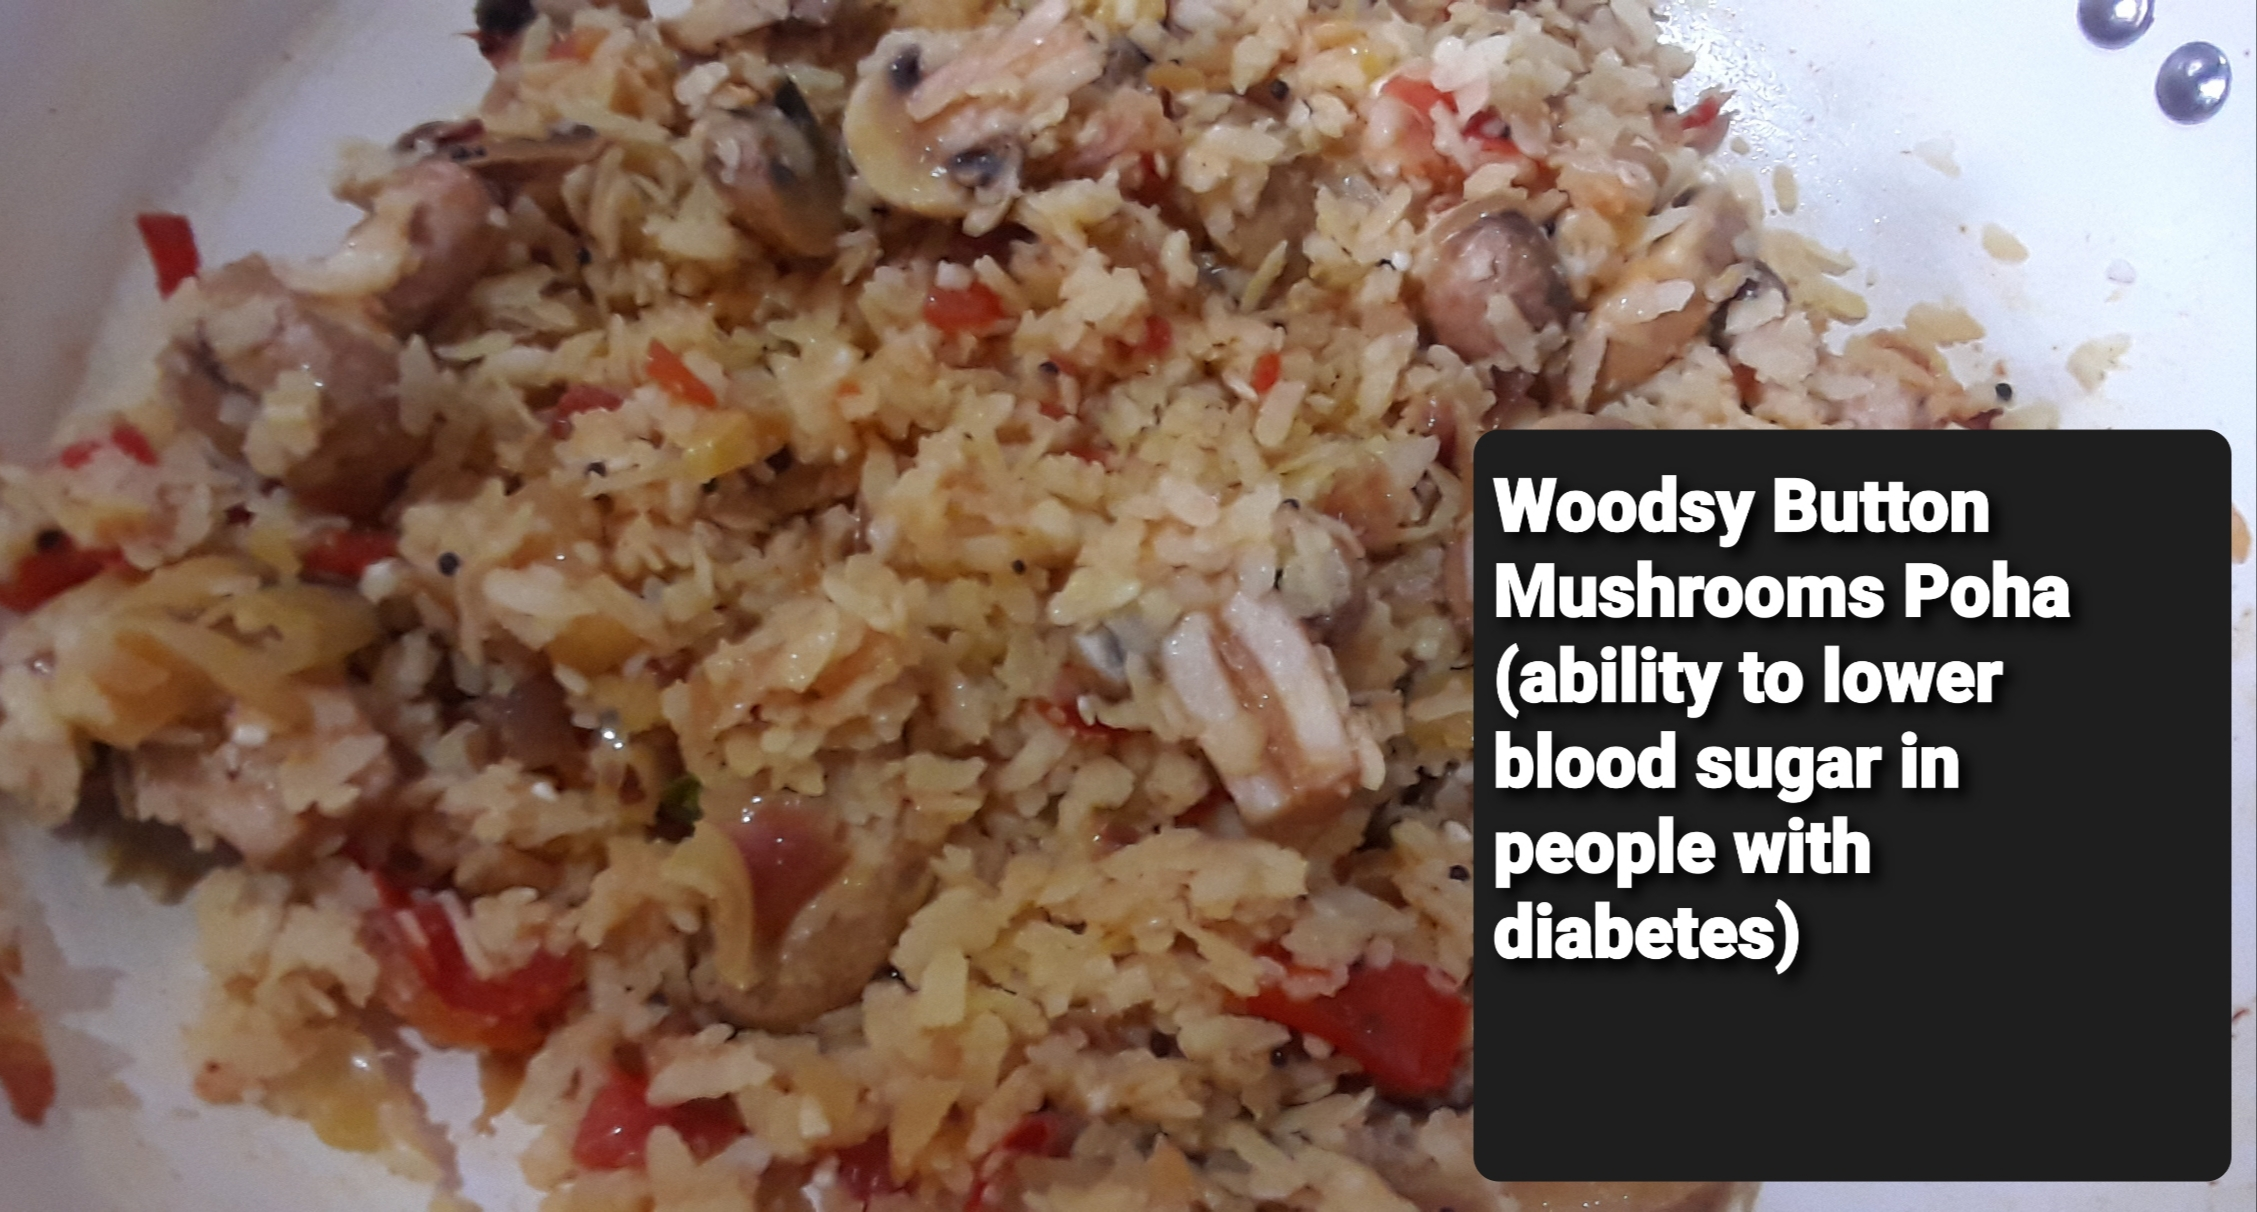 Woodsy Button Mushrooms Poha